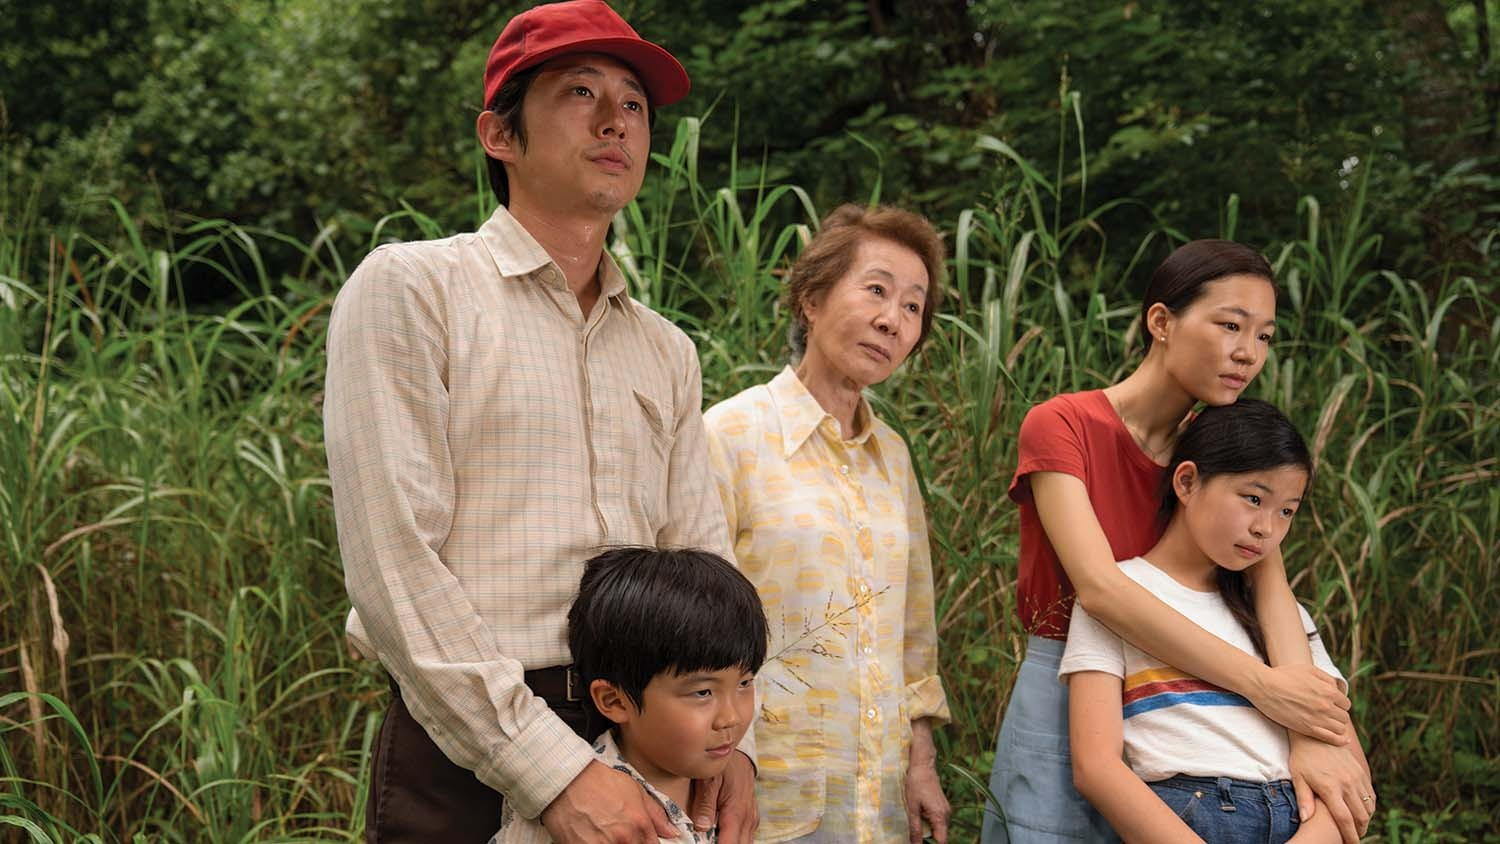 Making of 'Minari': How Lee Isaac Chung Created a Unique American Story Rarely Seen Onscreen